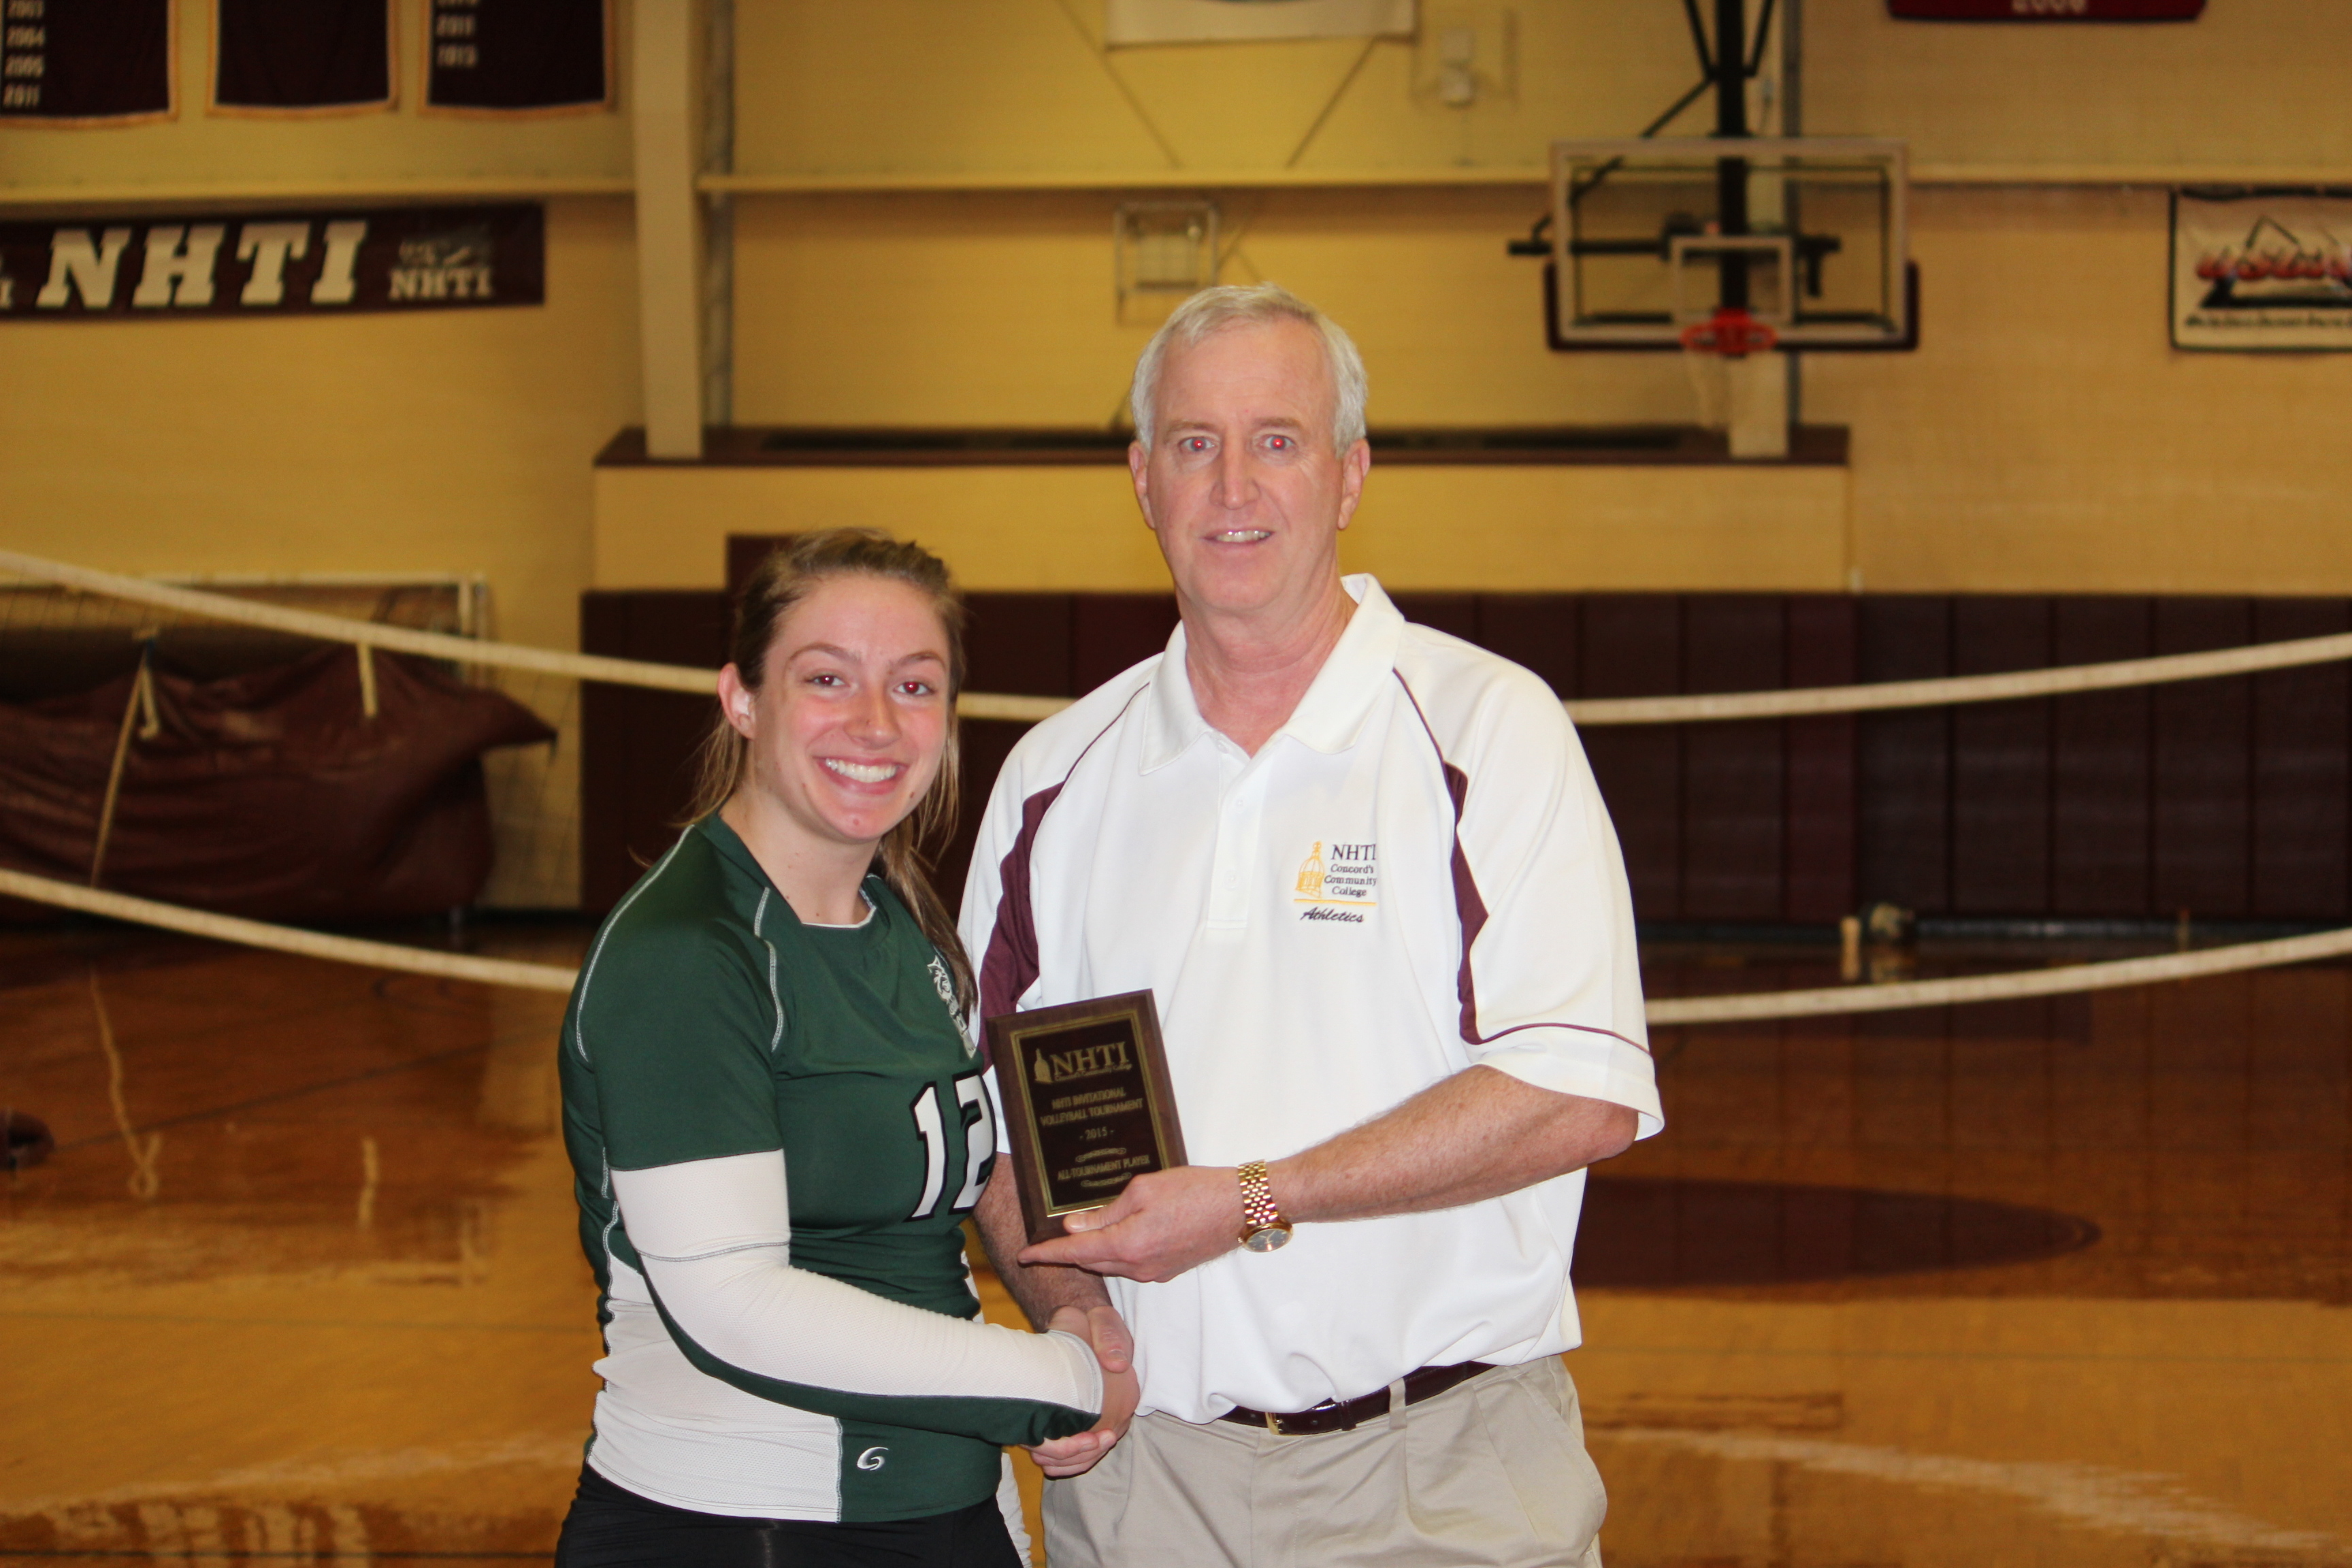 1443630878 mary calabrese nhti all tourney team pic 9 24 '15